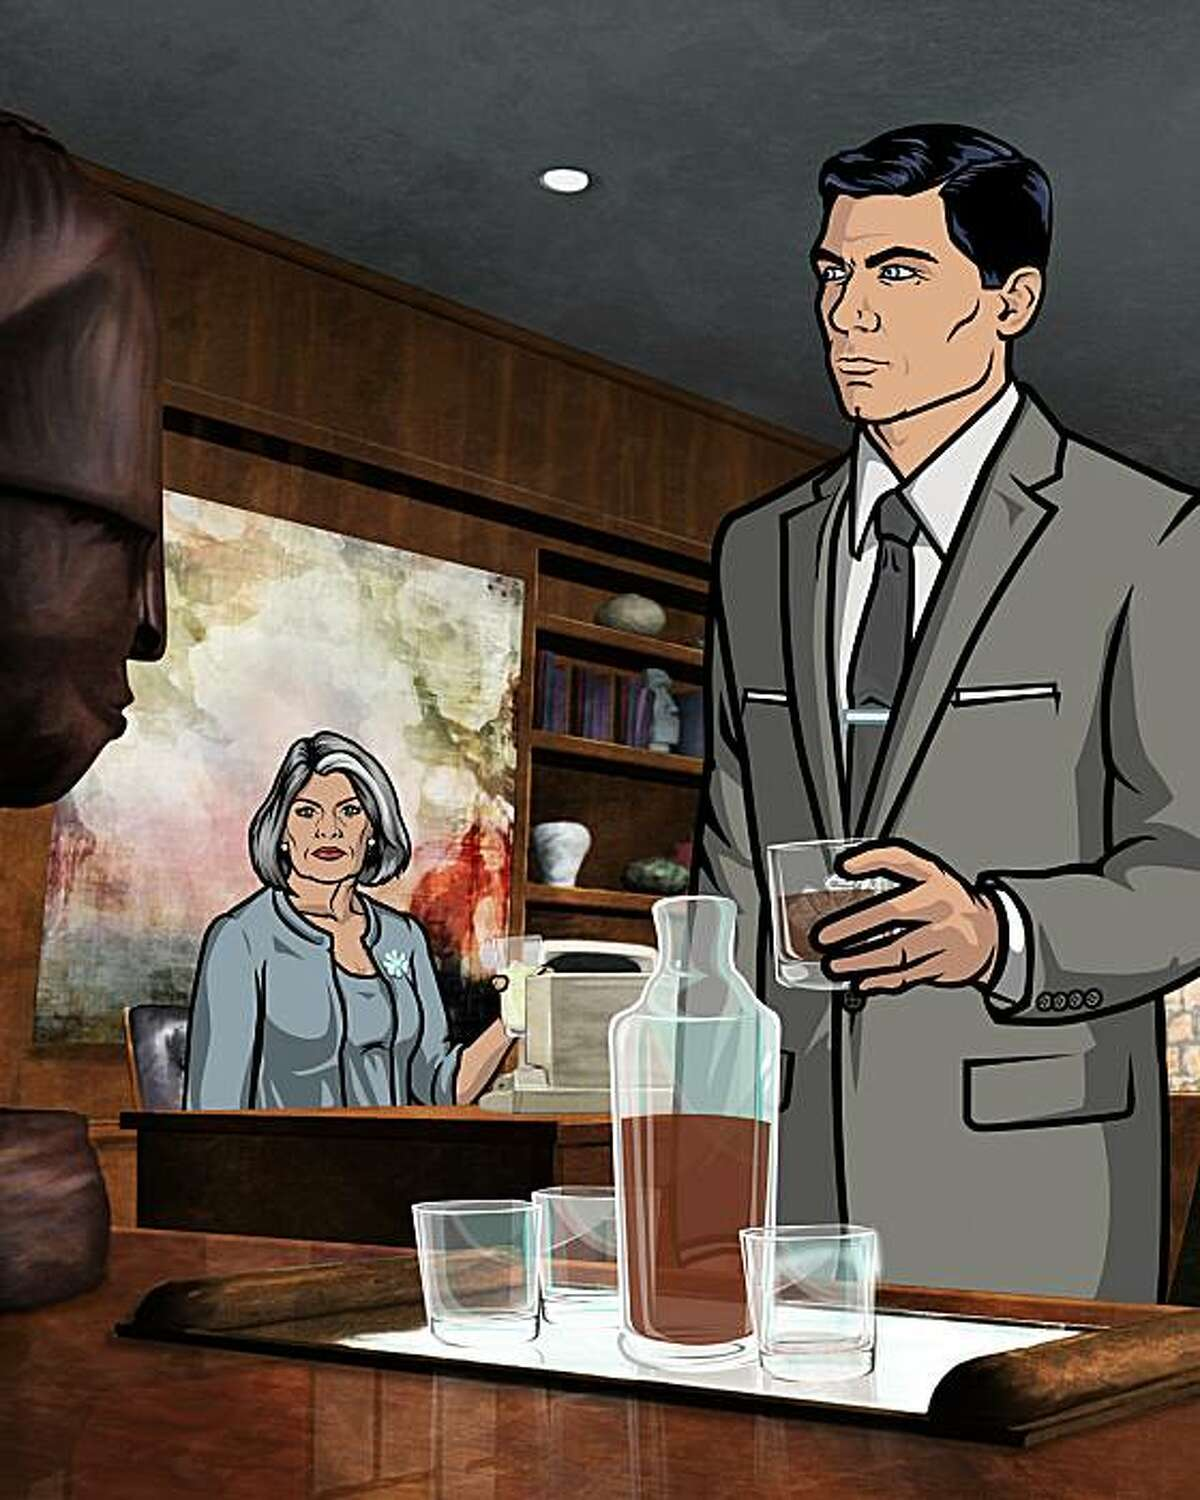 Archer, a new half-hour animated comedy series airing on FX. L-R: Malory Archer and Sterling Archer.